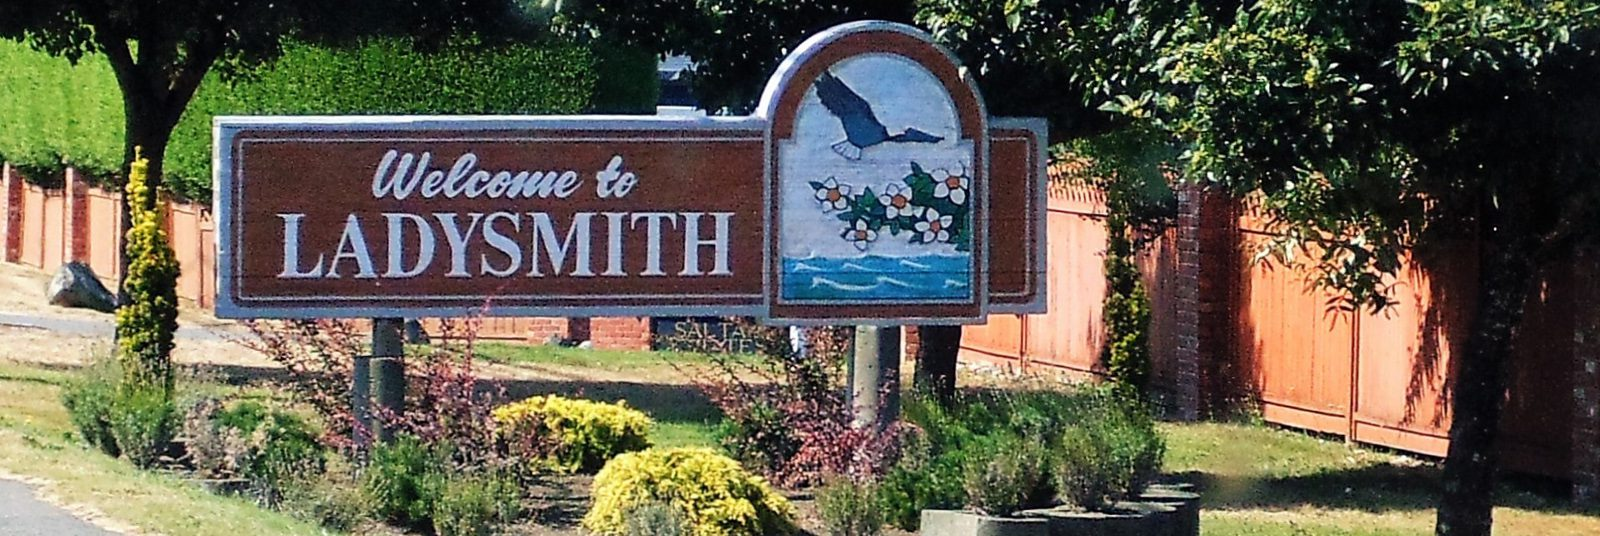 Ladysmith Welcome Sign -sliver